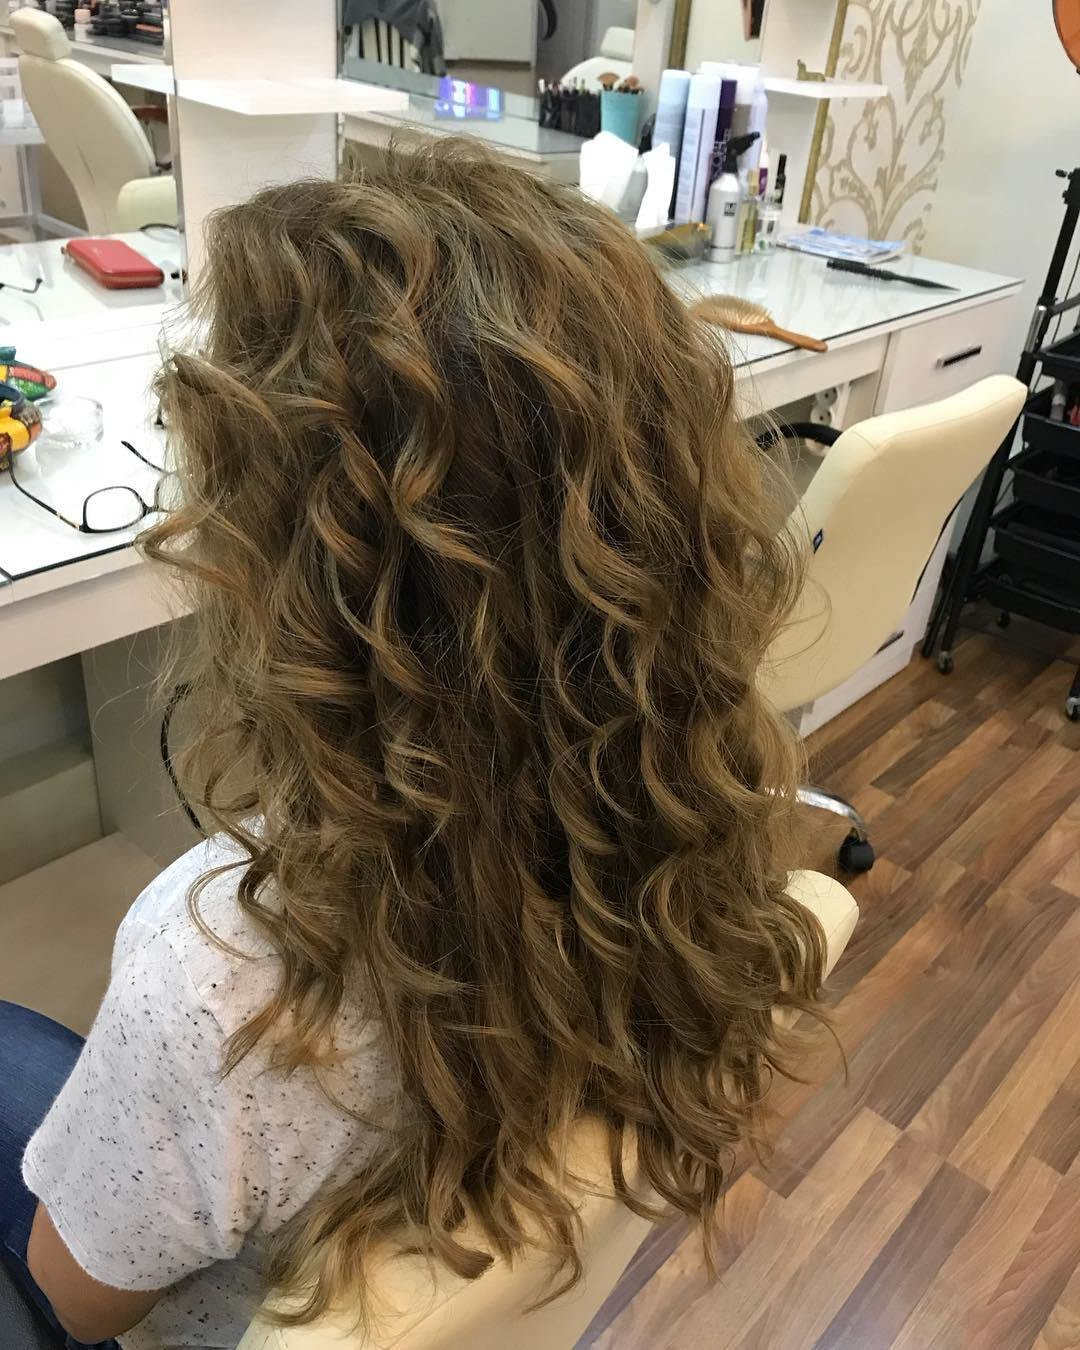 New Curly Hairstyles 2019 Top Fashionable Updo Ideas And Ideas With Pictures